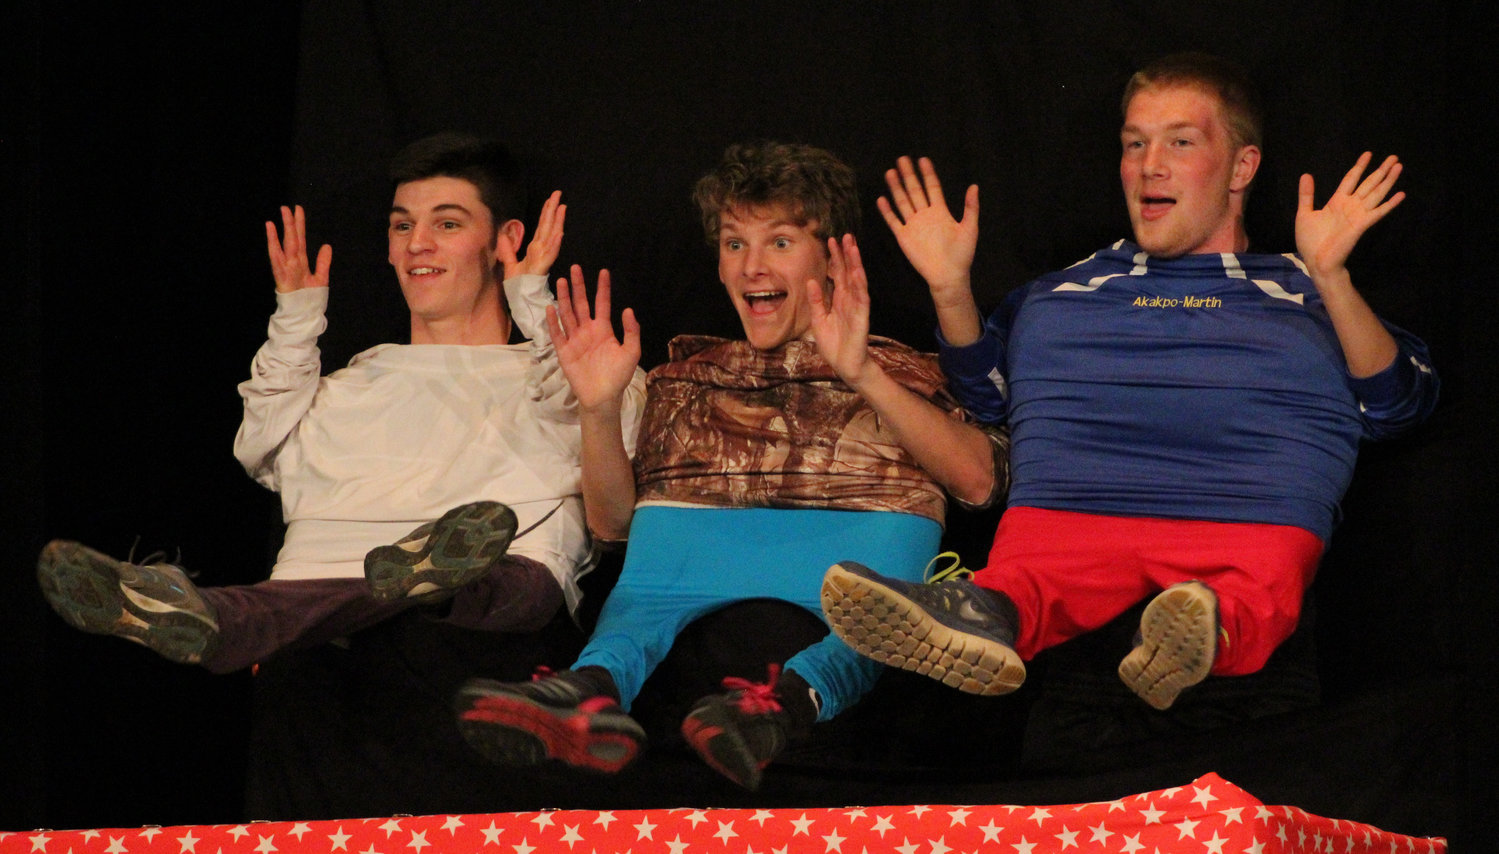 Scott Ash, Ben Knisely and Ethan Miller perform during Mr. Middletown on March 29.